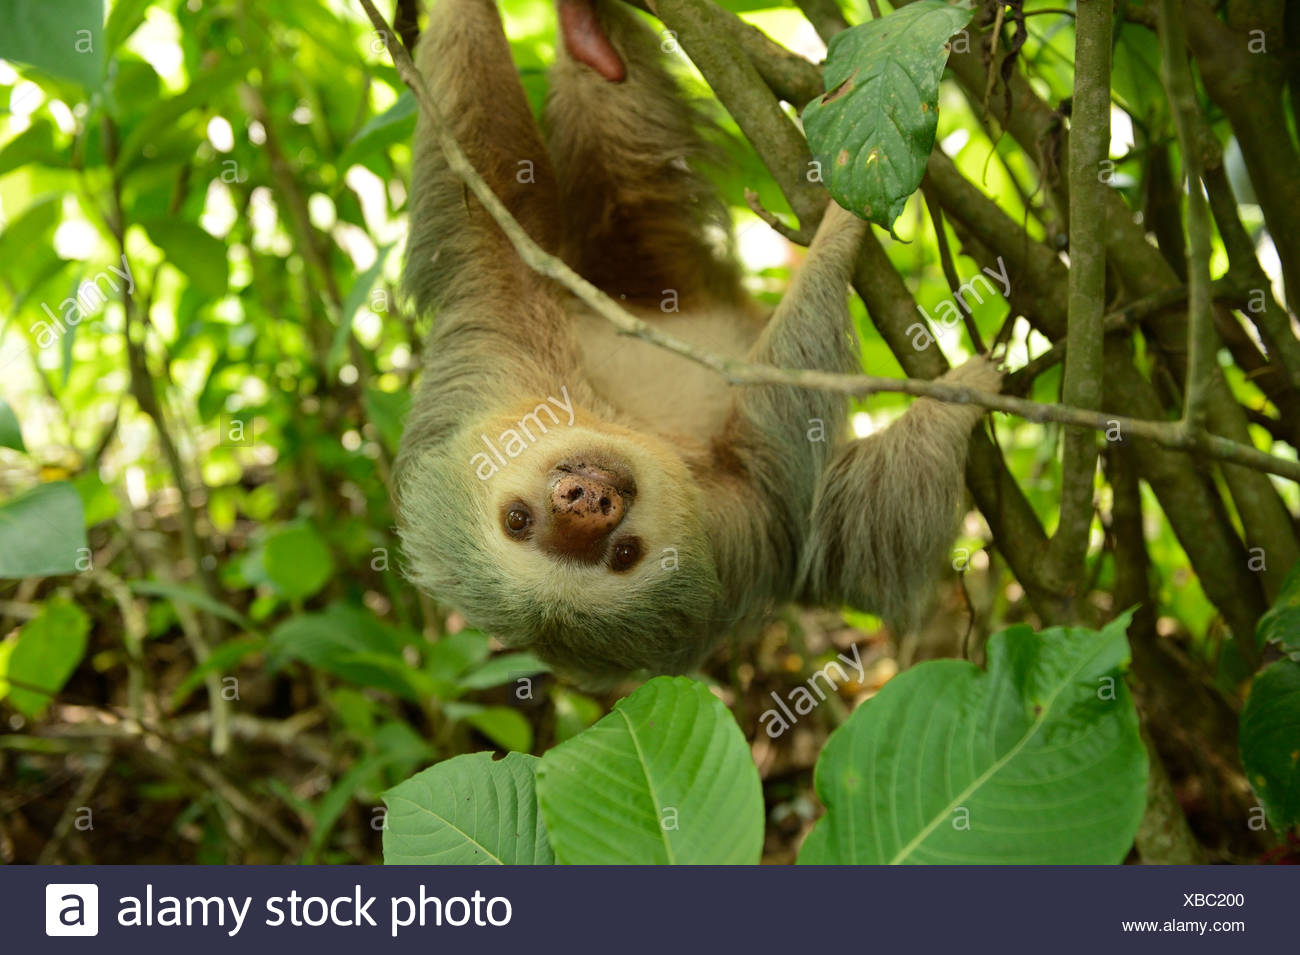 Hoffmann's two-toed sloth (Choloepus hoffmanni), hanging upside down in a tree, La Fortuna, Costa Rica, Central America Stock Photo